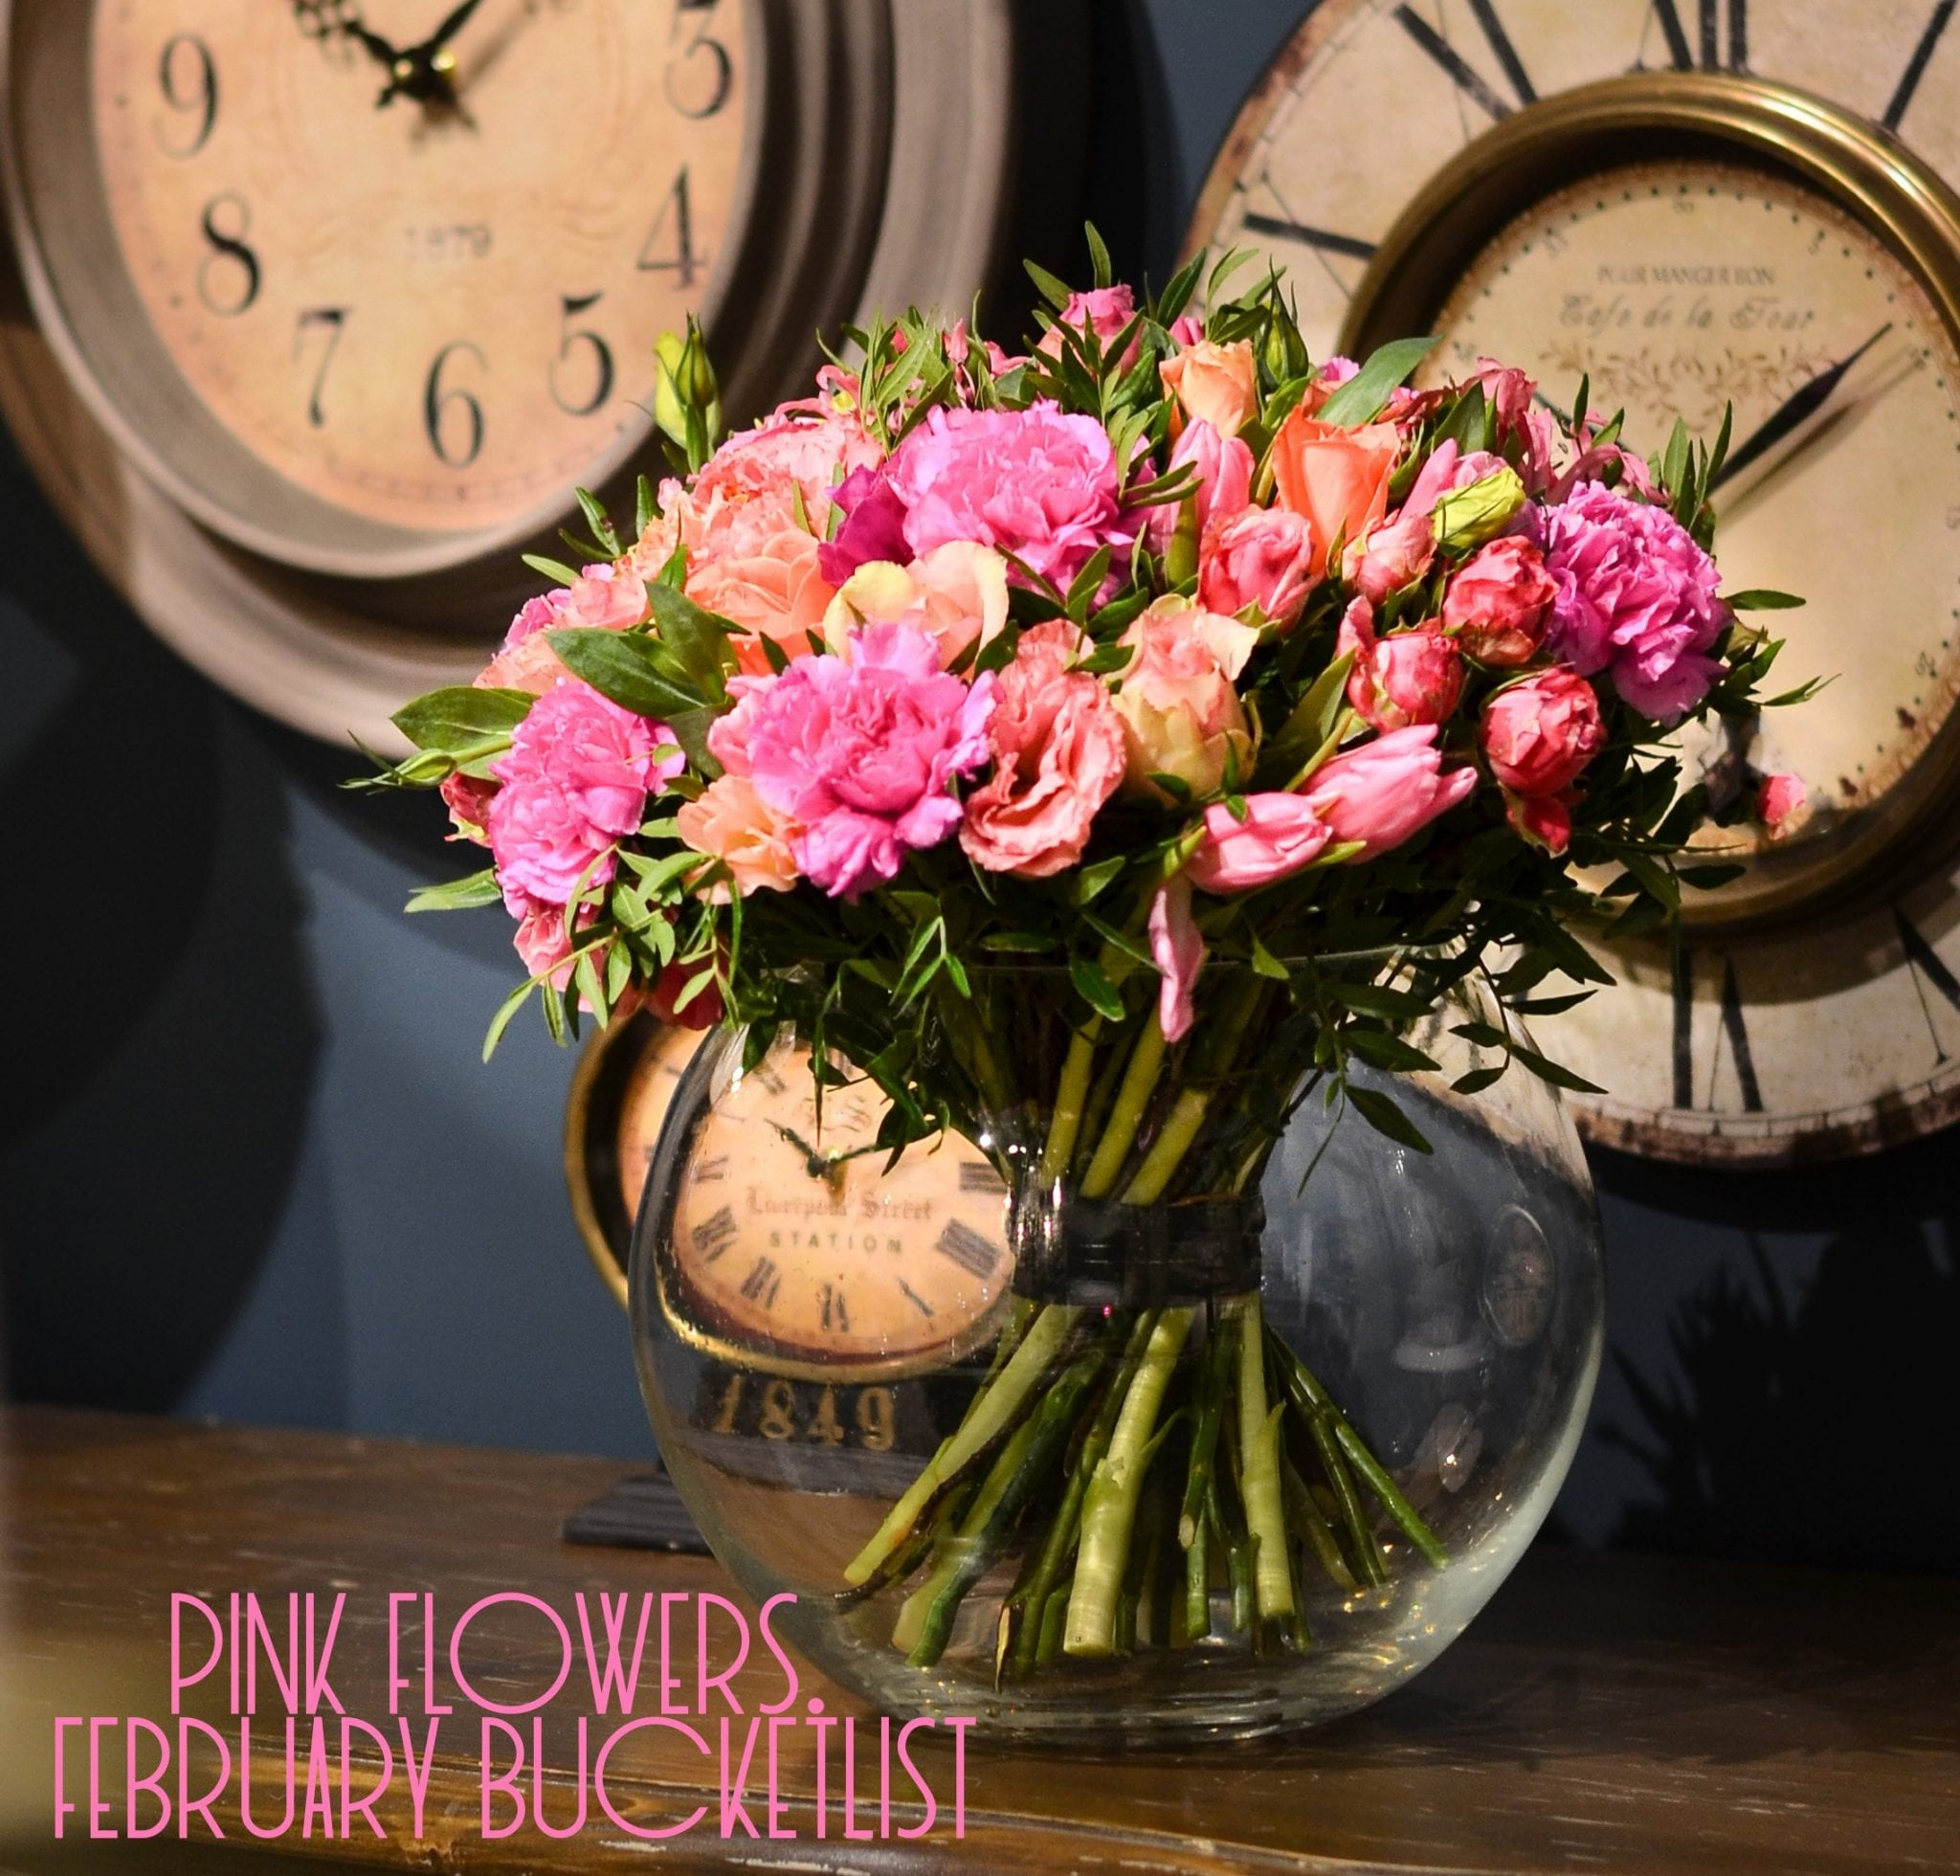 Pink Flowers for a February Bucketlist | Good Life of a Housewife